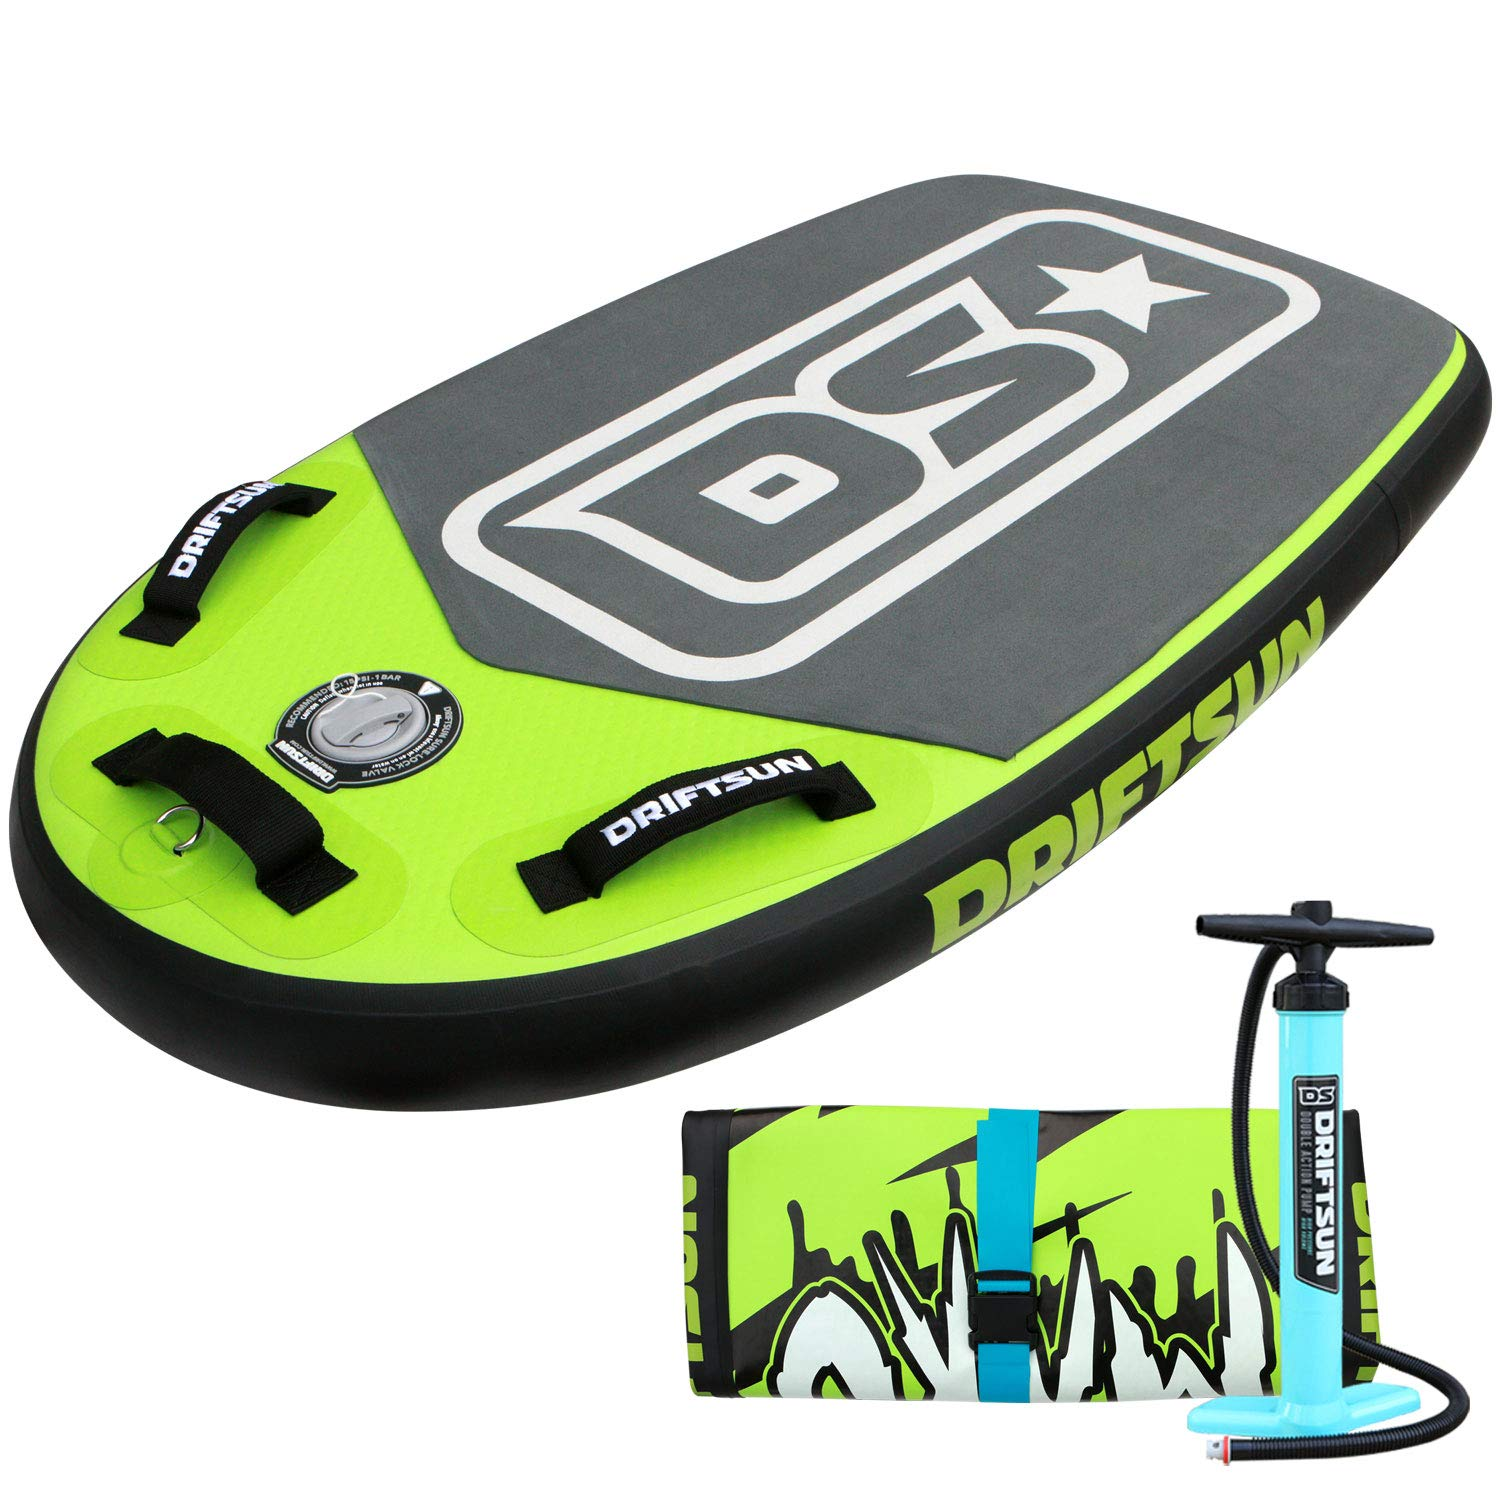 "Driftsun Mako Inflatable Bodyboard Package - Portable Bodyboard with RigidAir Drop Stitch Technology, Available in Green and Blue, 42"" x 25"""